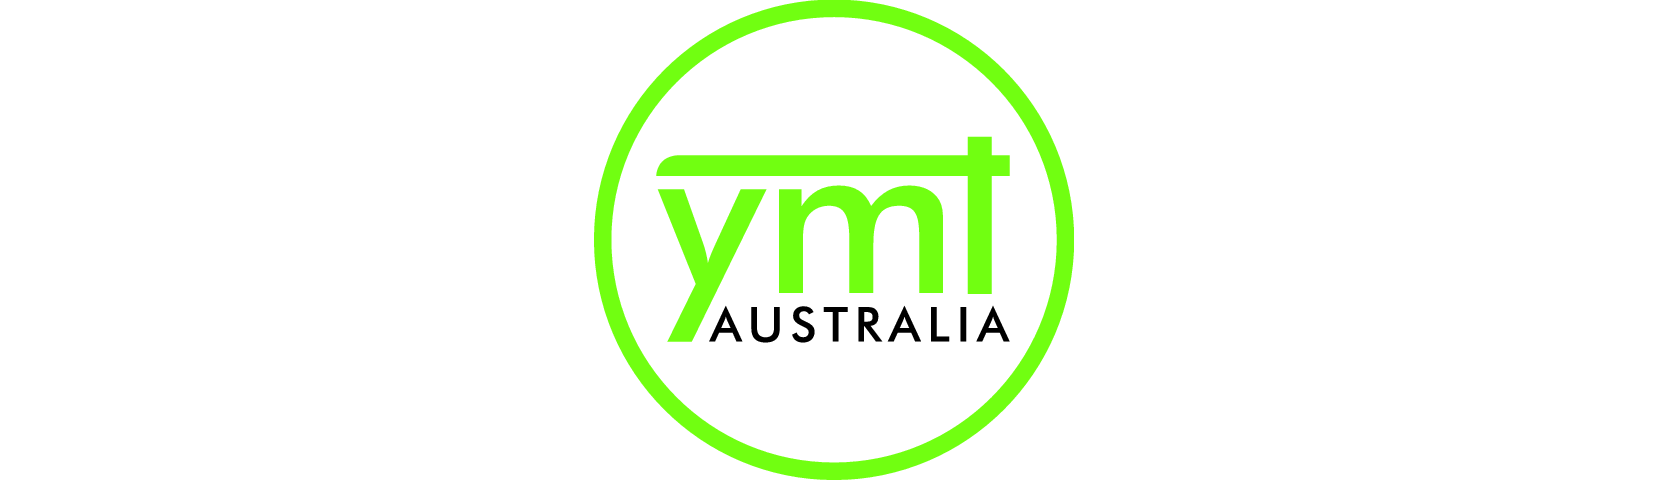 ymtlogo for web.png